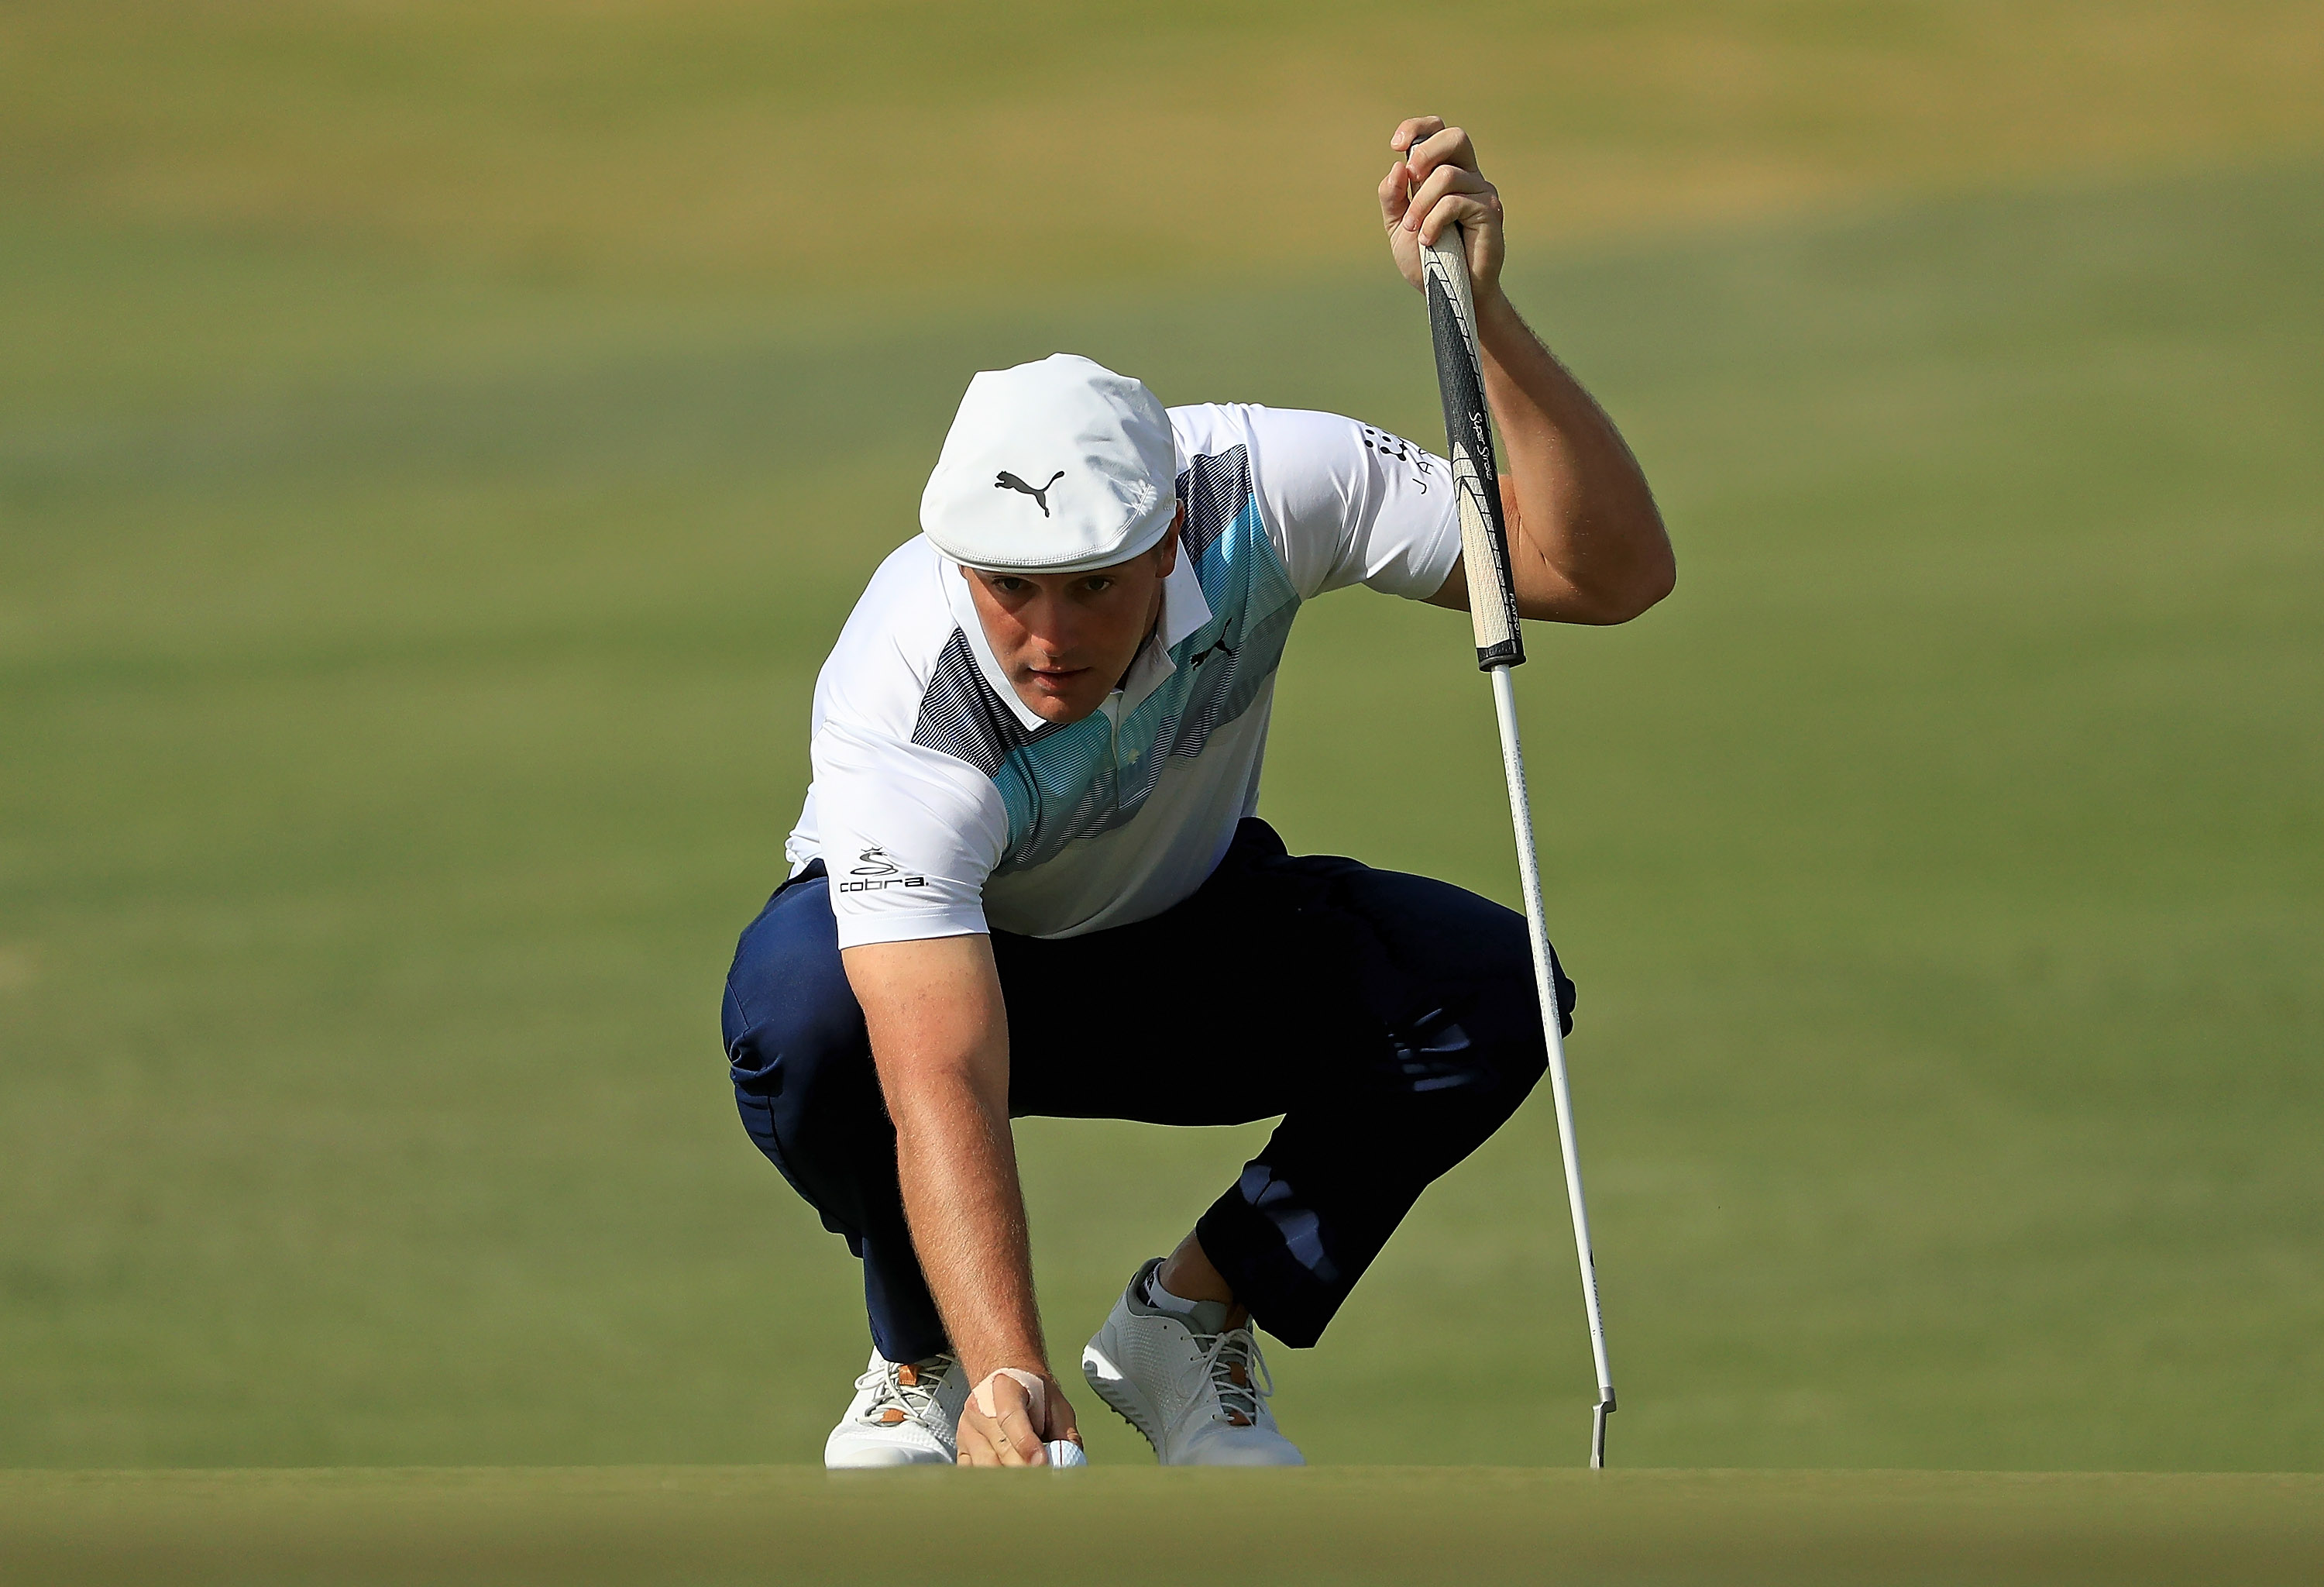 LAS VEGAS, NV - NOVEMBER 04: Bryson DeChambeau lines up a putt on the 2nd hole green during the final round of the Shriners Hospitals for Children Open at TPC Summerlin on November 4, 2018 in Las Vegas, Nevada. (Photo by Mike Ehrmann/Getty Images)